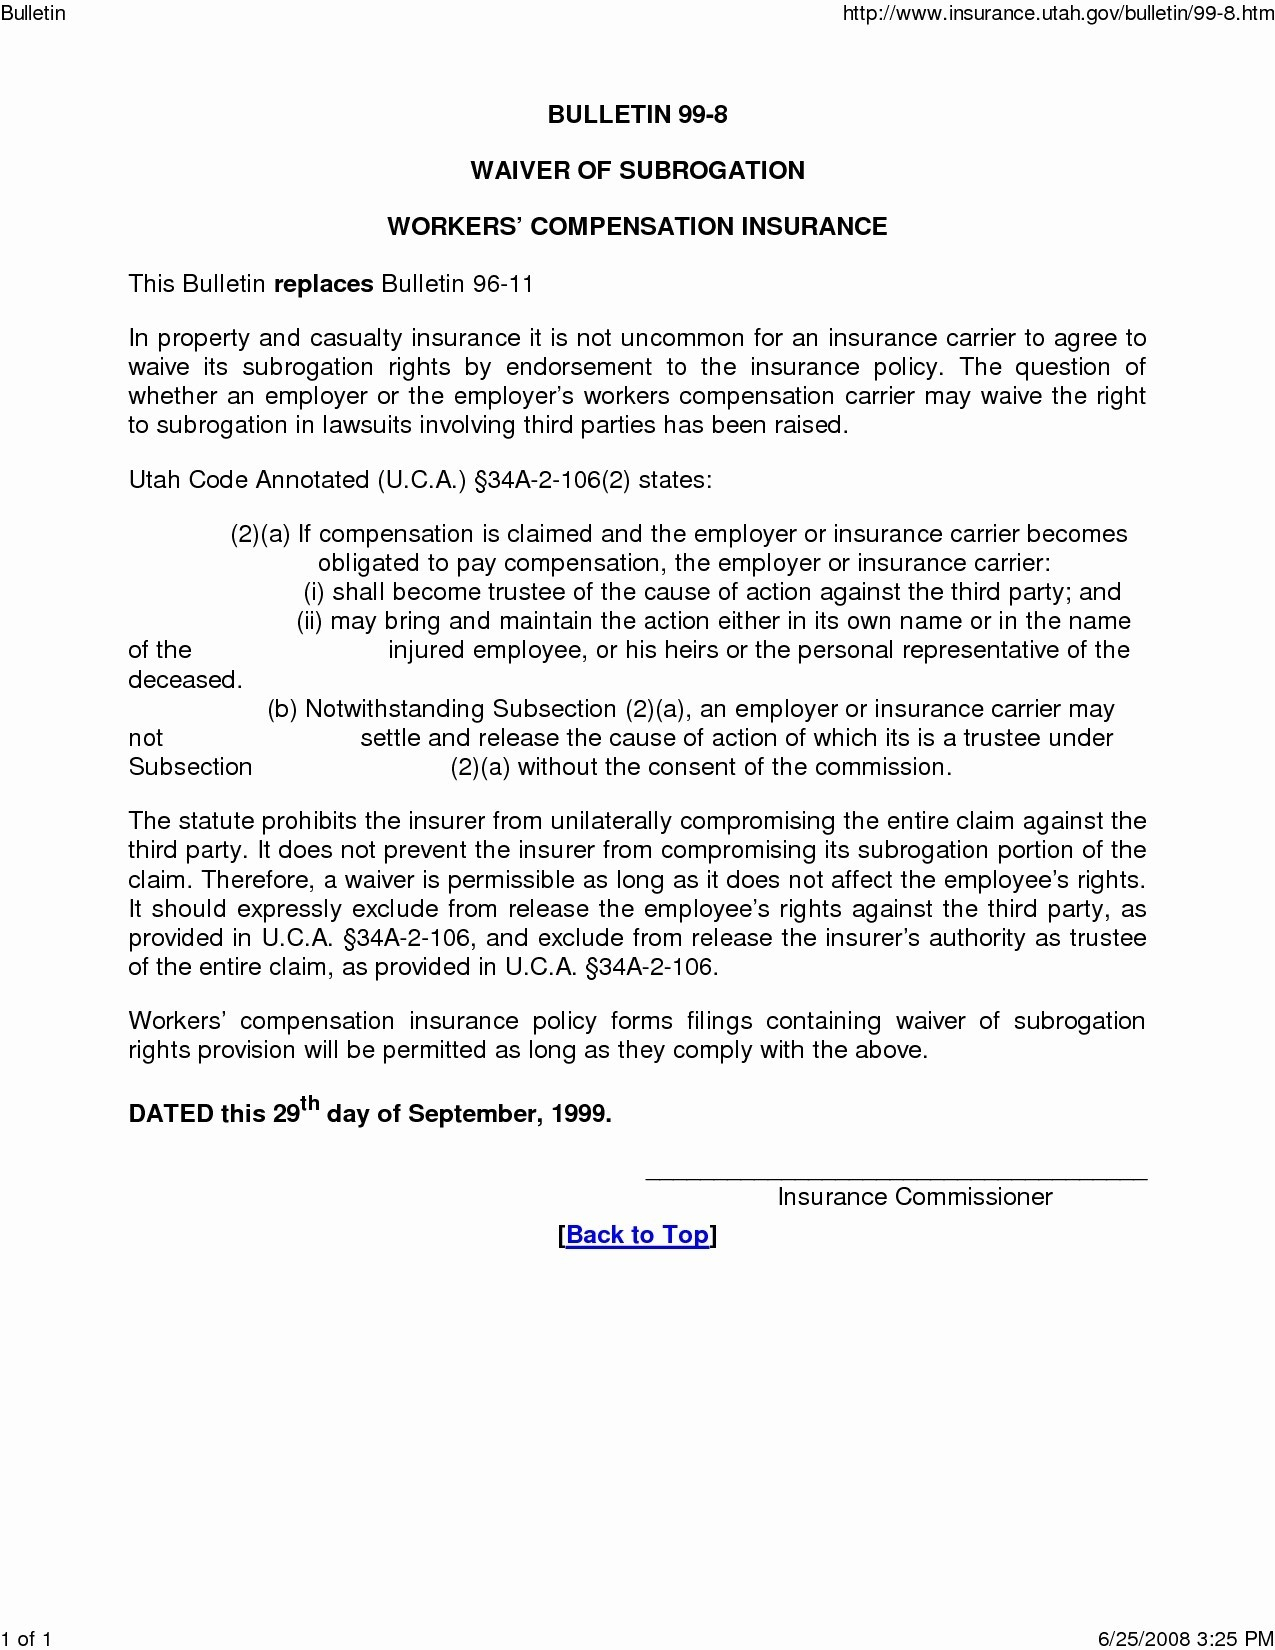 subrogation demand letter template Collection-Subrogation Demand Letter Template Collection 1-h